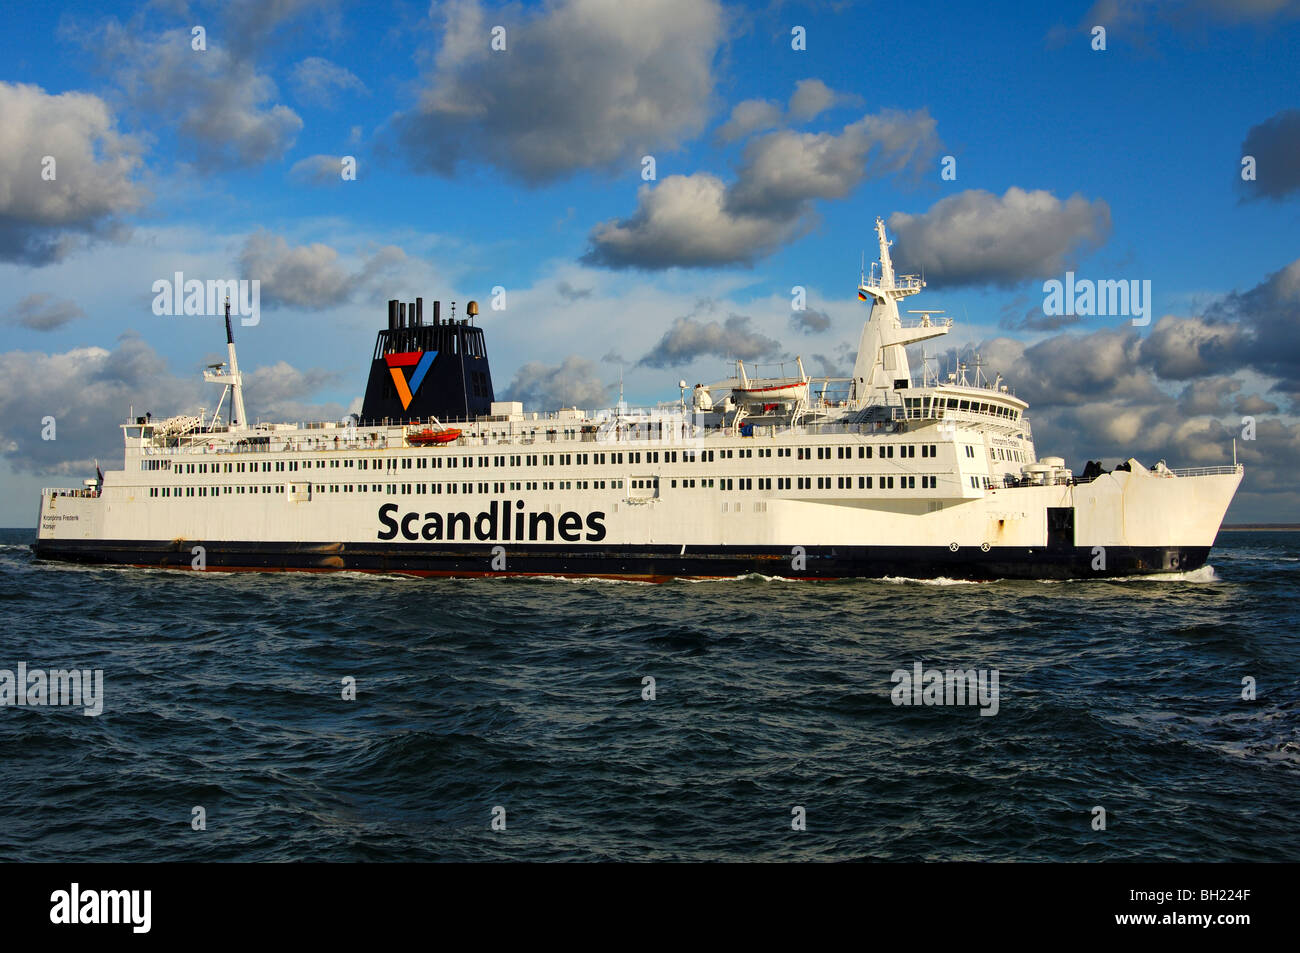 """Scandlines ferry vessel """"Kronprins Frederik"""" at high sea on the Baltic Sea - Stock Image"""